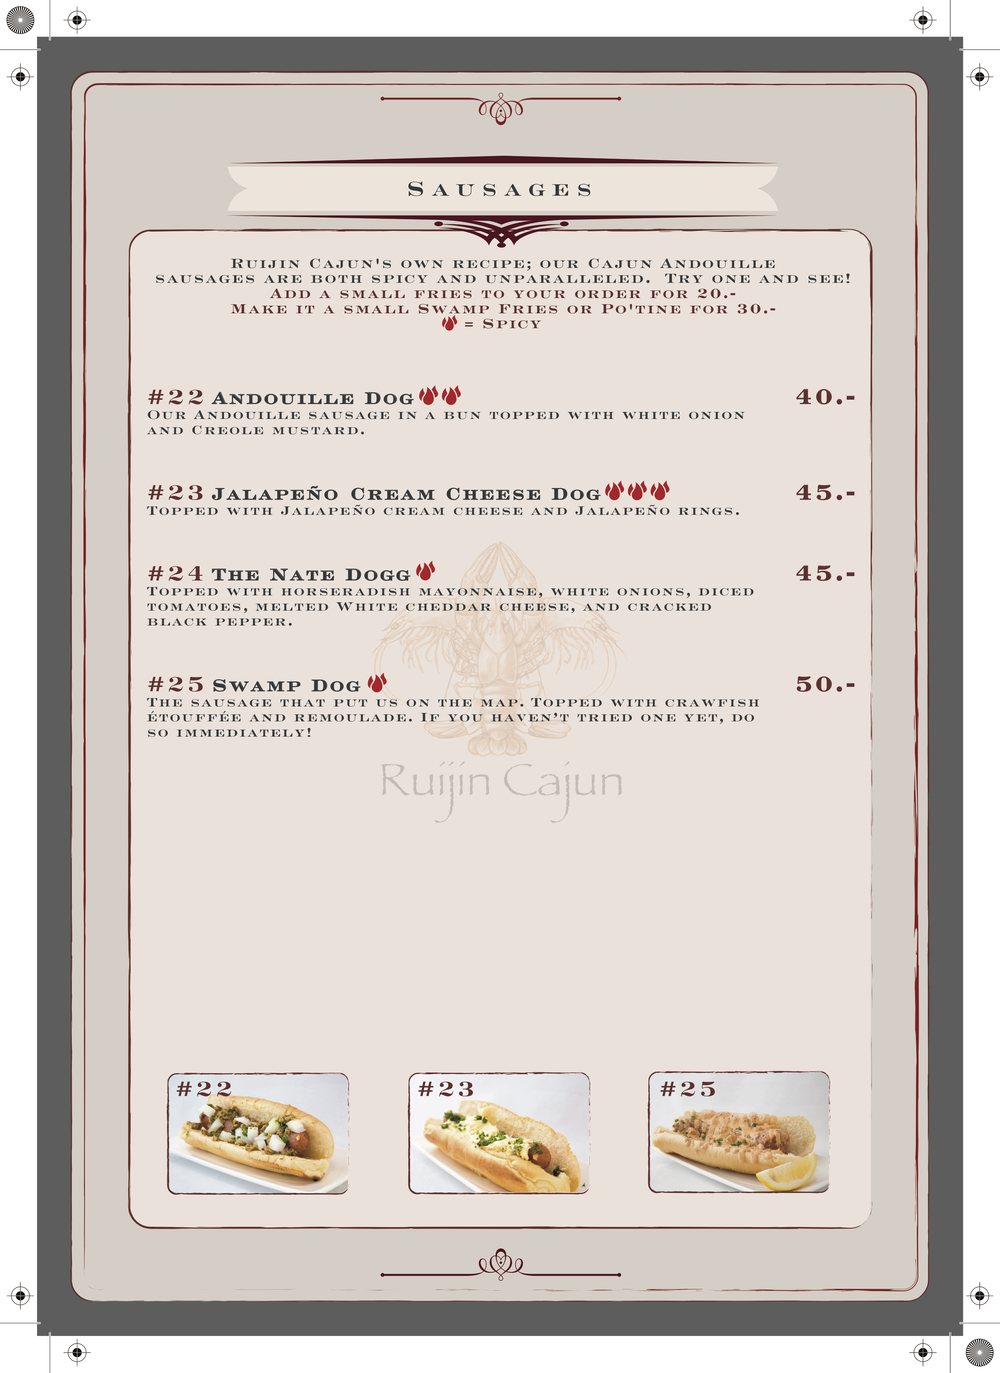 rc_food_menu_2016_print_rdy6.jpg